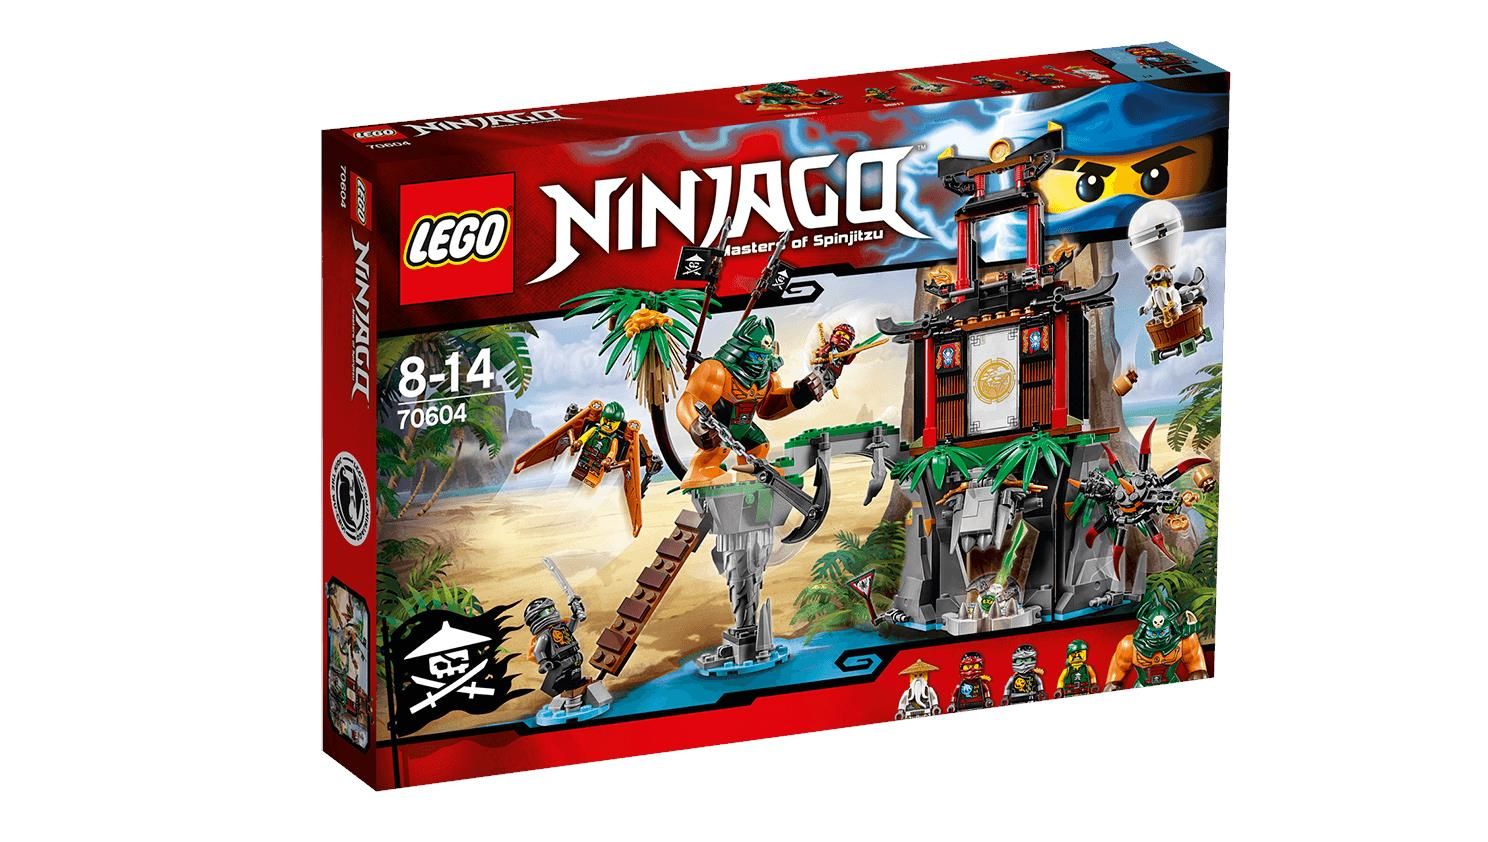 LEGO NINJAGO™ Tiger Widow Island 70604